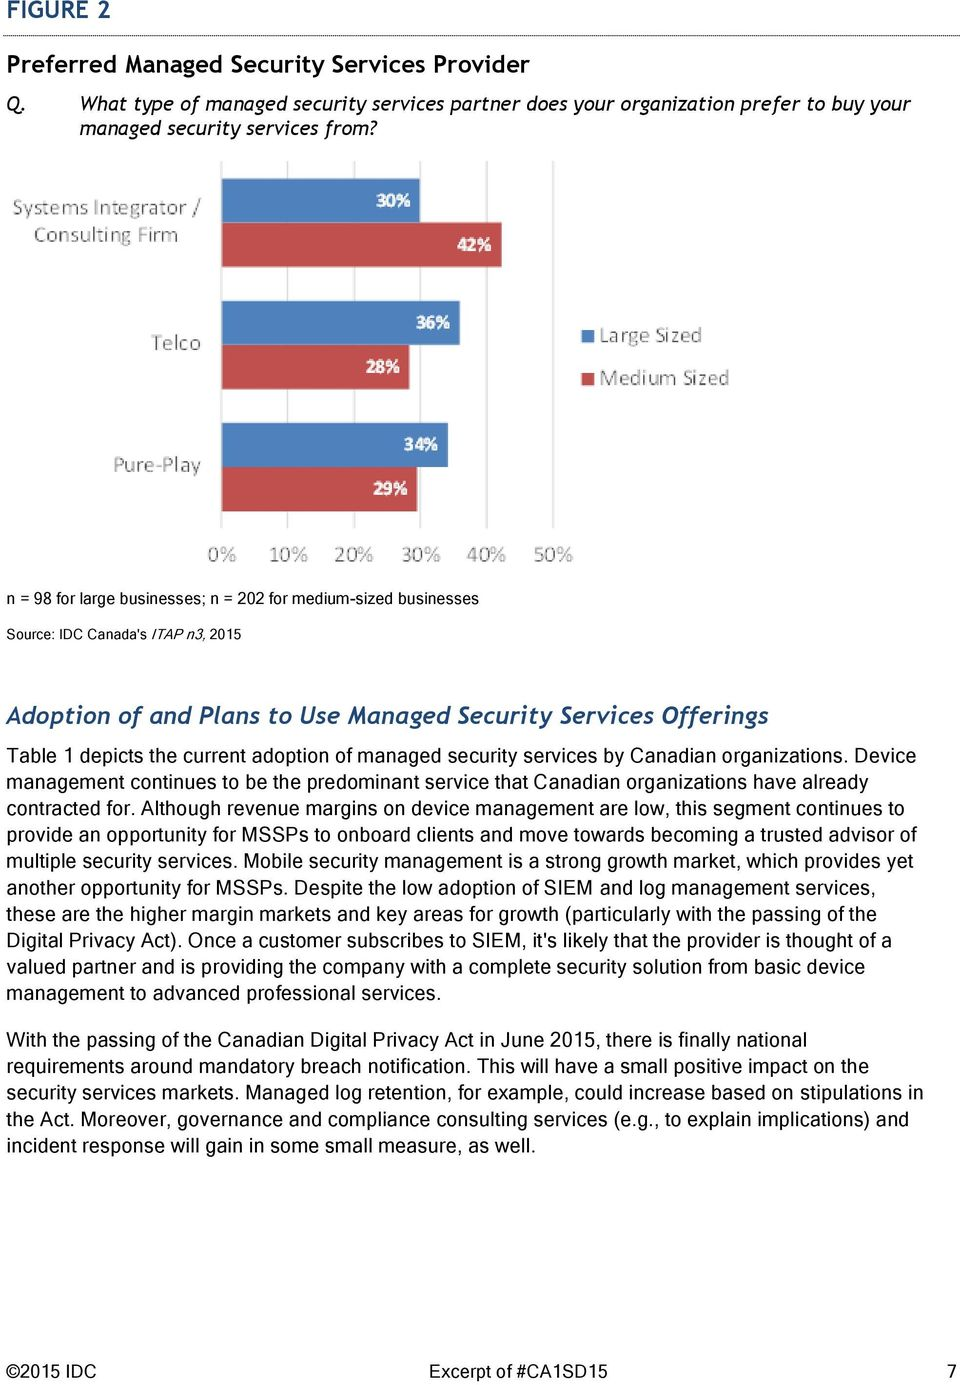 adoption of managed security services by Canadian organizations. Device management continues to be the predominant service that Canadian organizations have already contracted for.